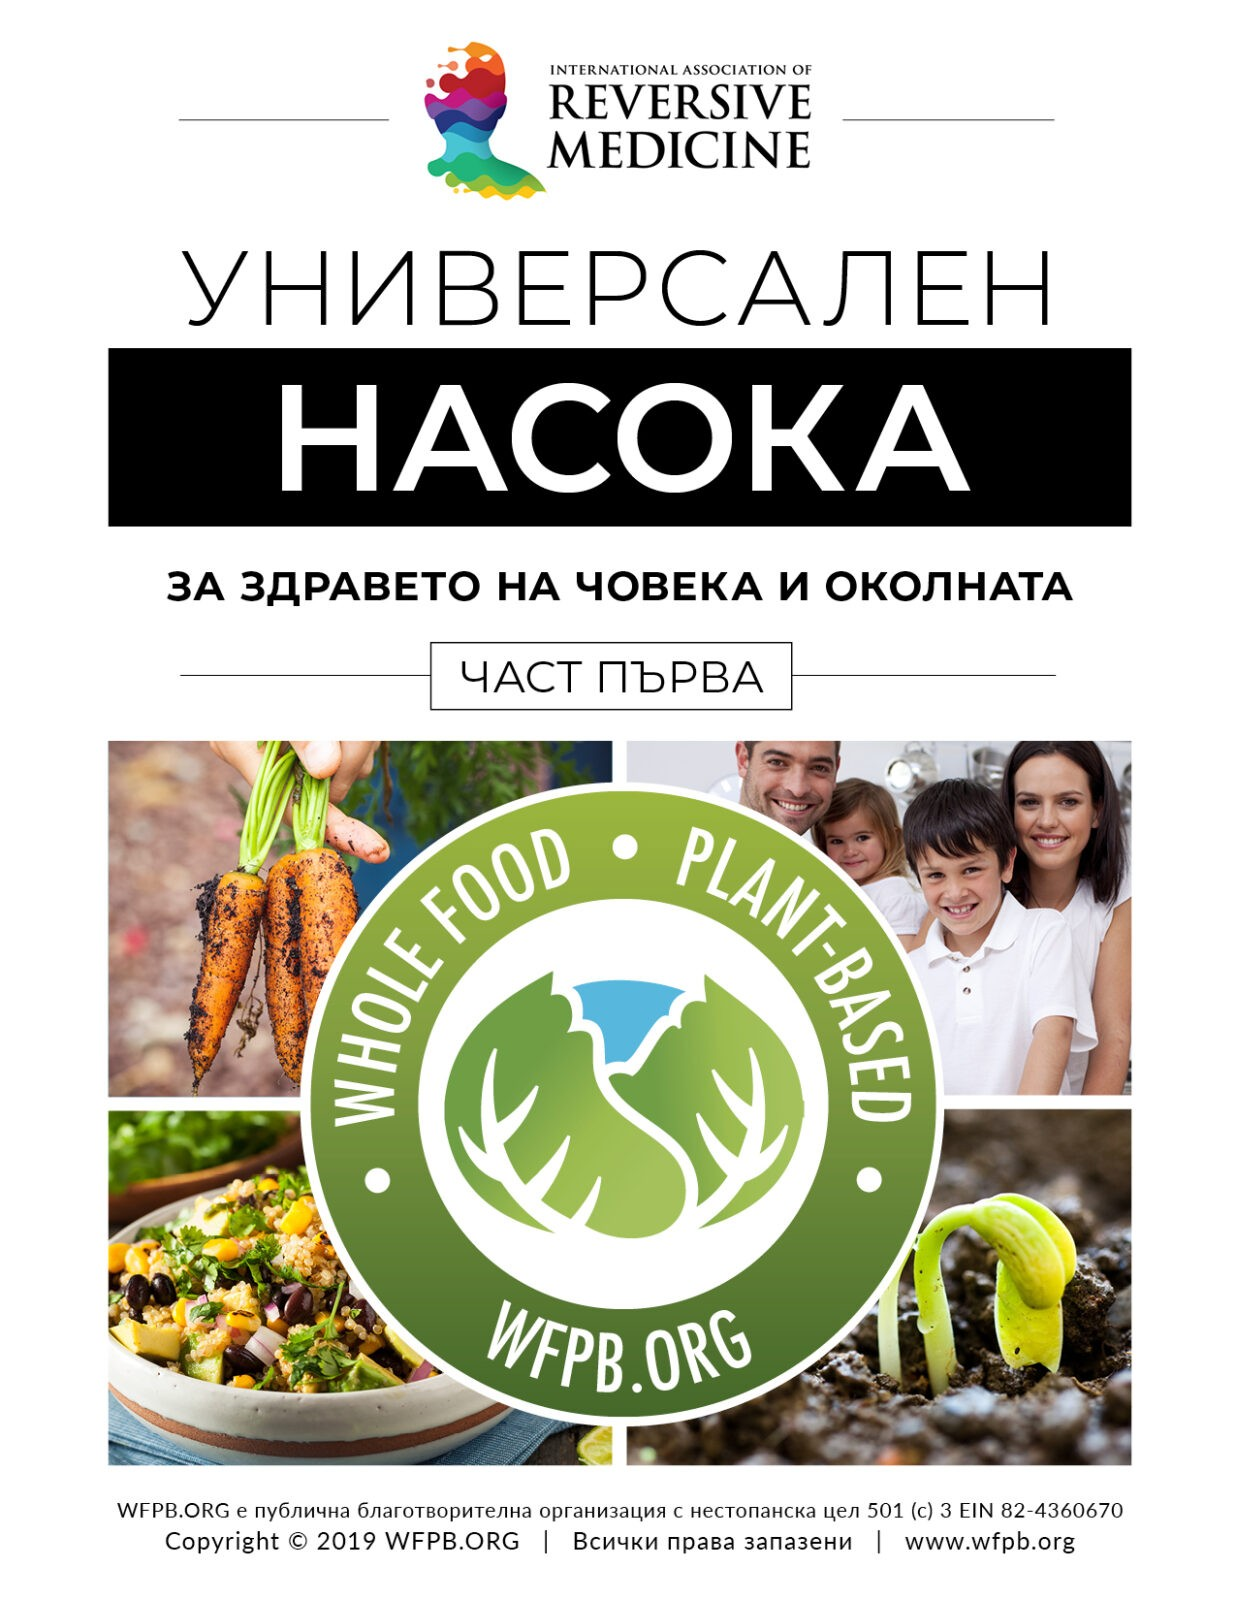 БЪЛГАРСКИ | UNIVERSAL GUIDELINE FOR HUMAN AND PLANETARY HEALTH | WFPB.ORG